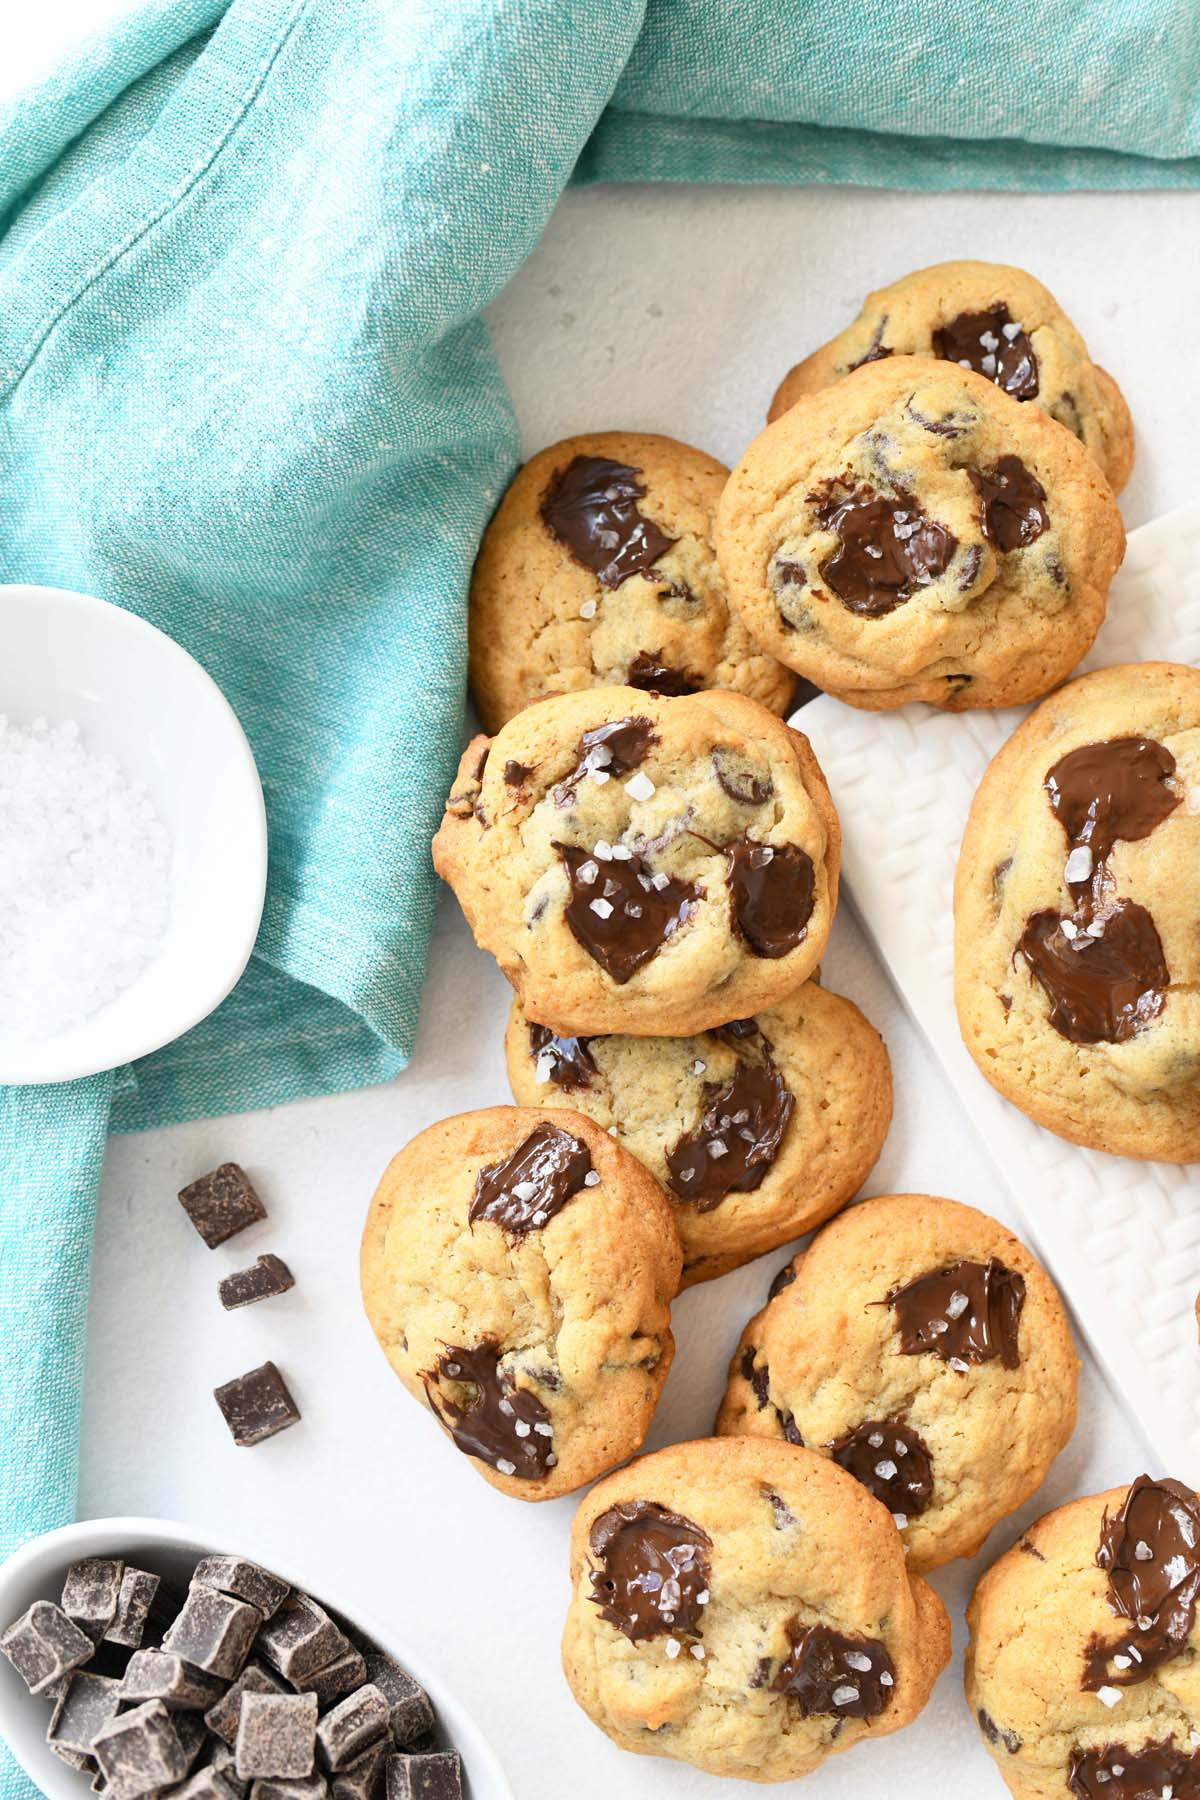 Sea salt and chocolate chip cookies with a blue napkin spread on a white table.